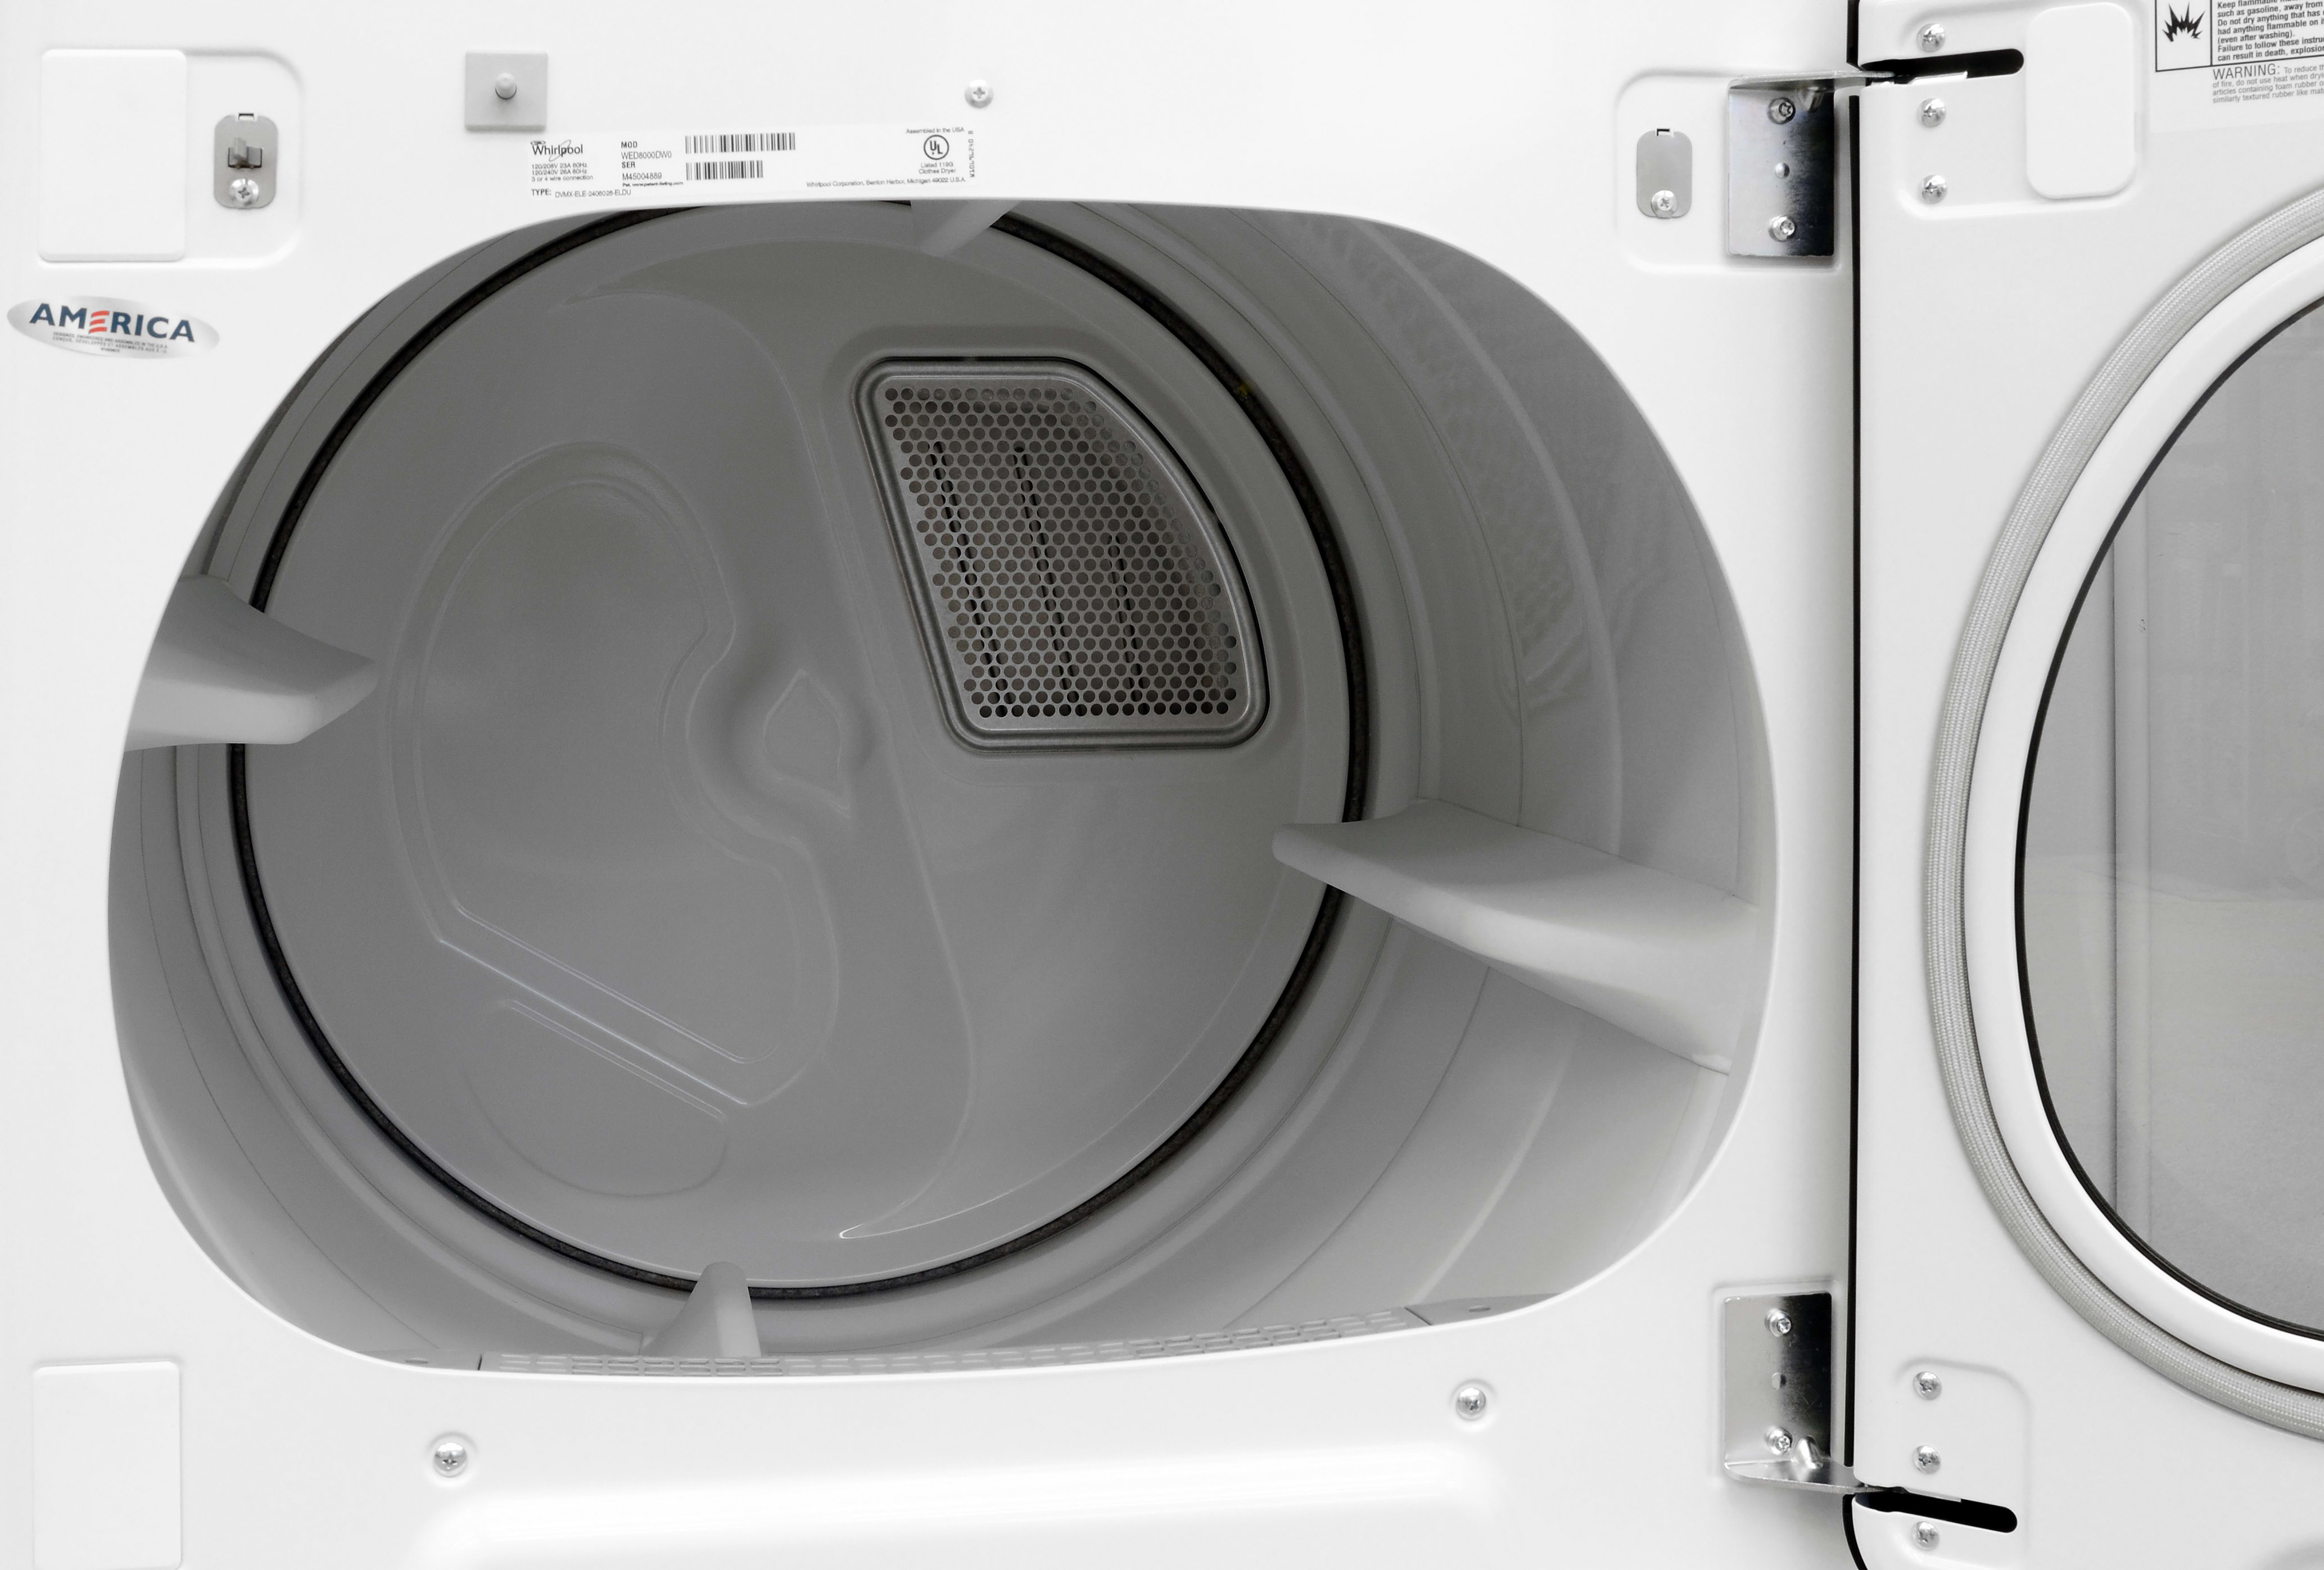 whirlpool cabrio wed8000dw dryer review laundry. Black Bedroom Furniture Sets. Home Design Ideas